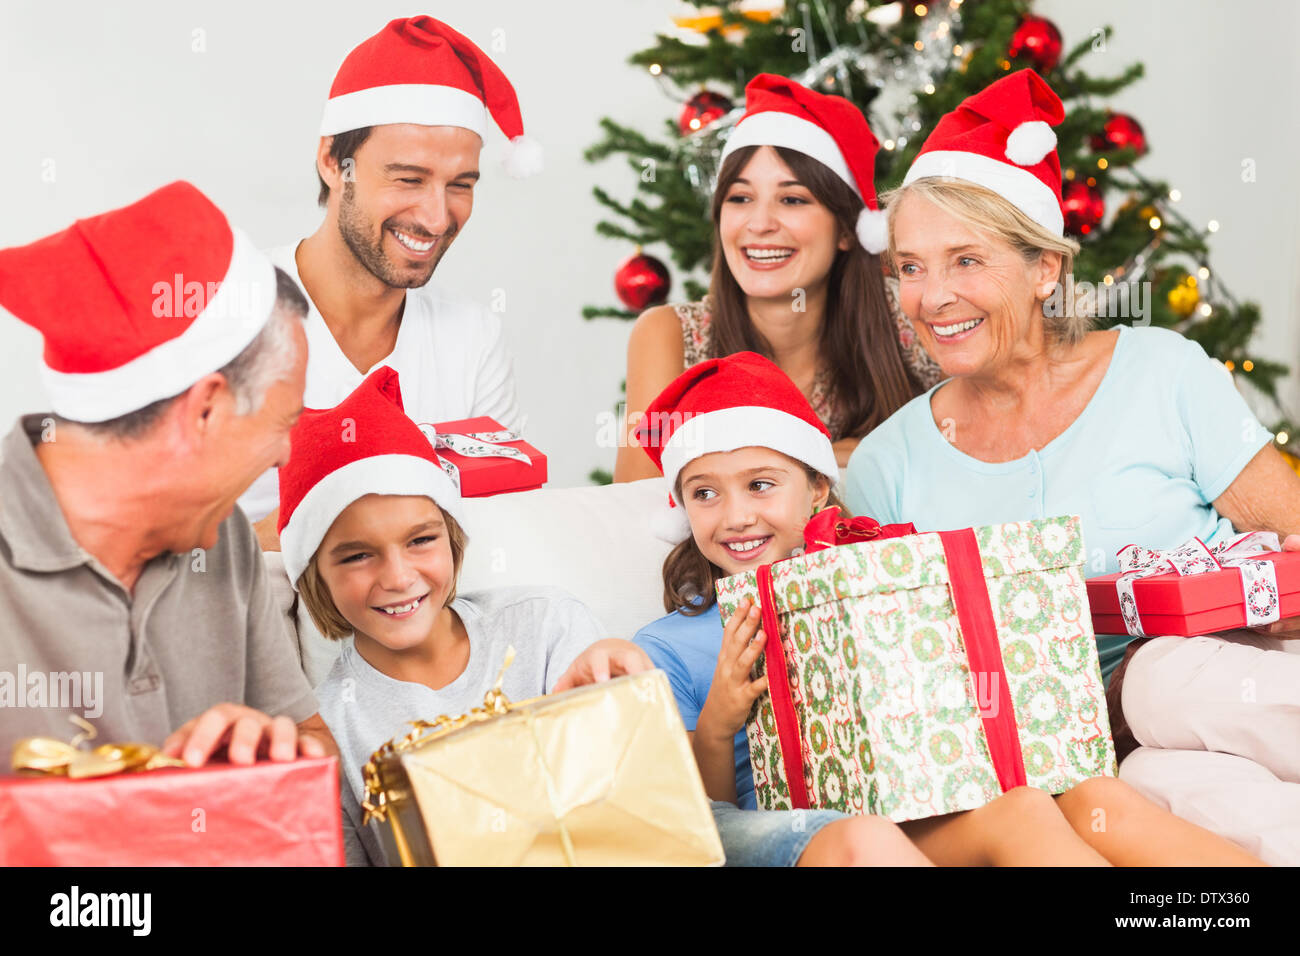 Happy family at christmas swapping gifts - Stock Image